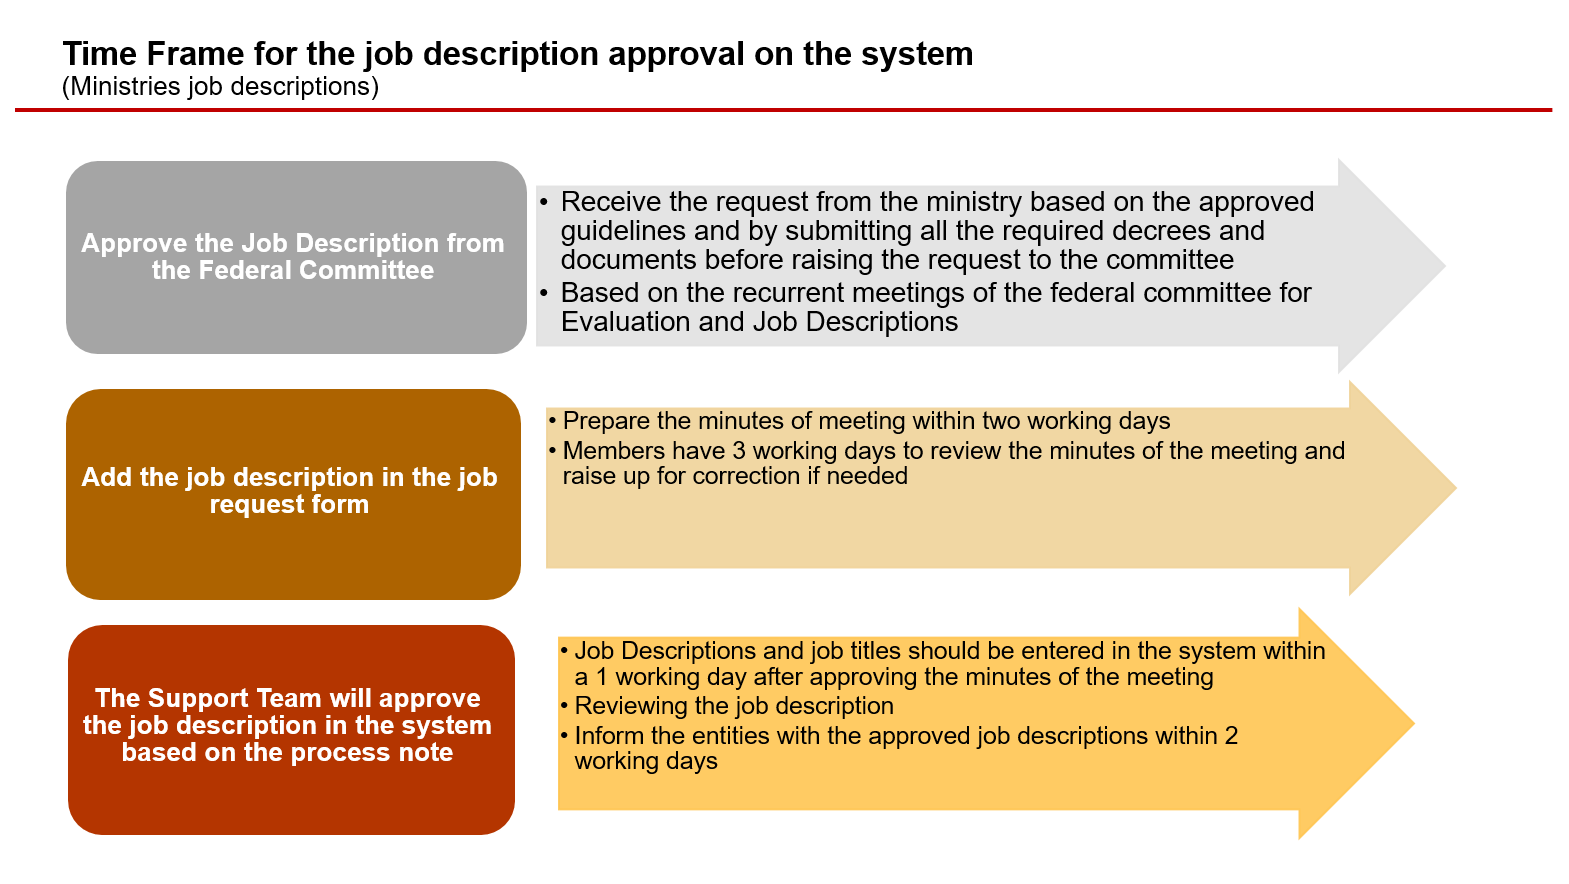 Time Frame for the job description approval on the system(Ministries job descriptions)